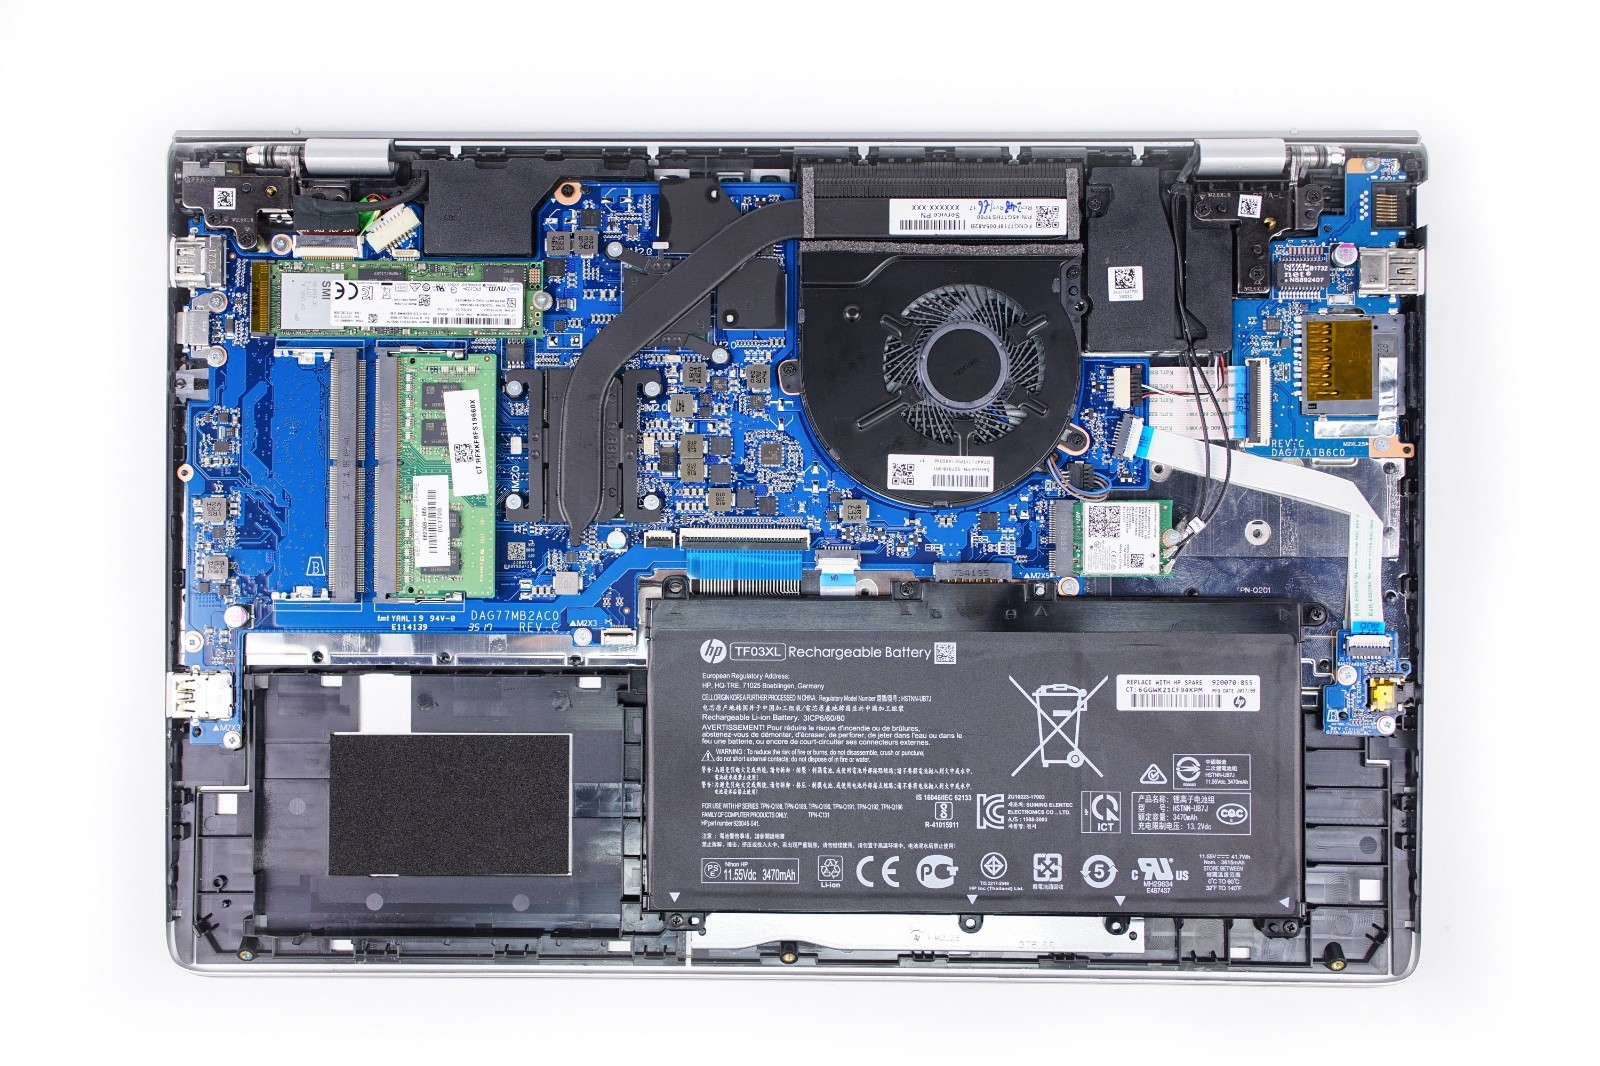 HP Pavilion 15 ck000 Disassembly 3 hp pavilion 15 ck000 disassembly and ram, ssd and hdd upgrade